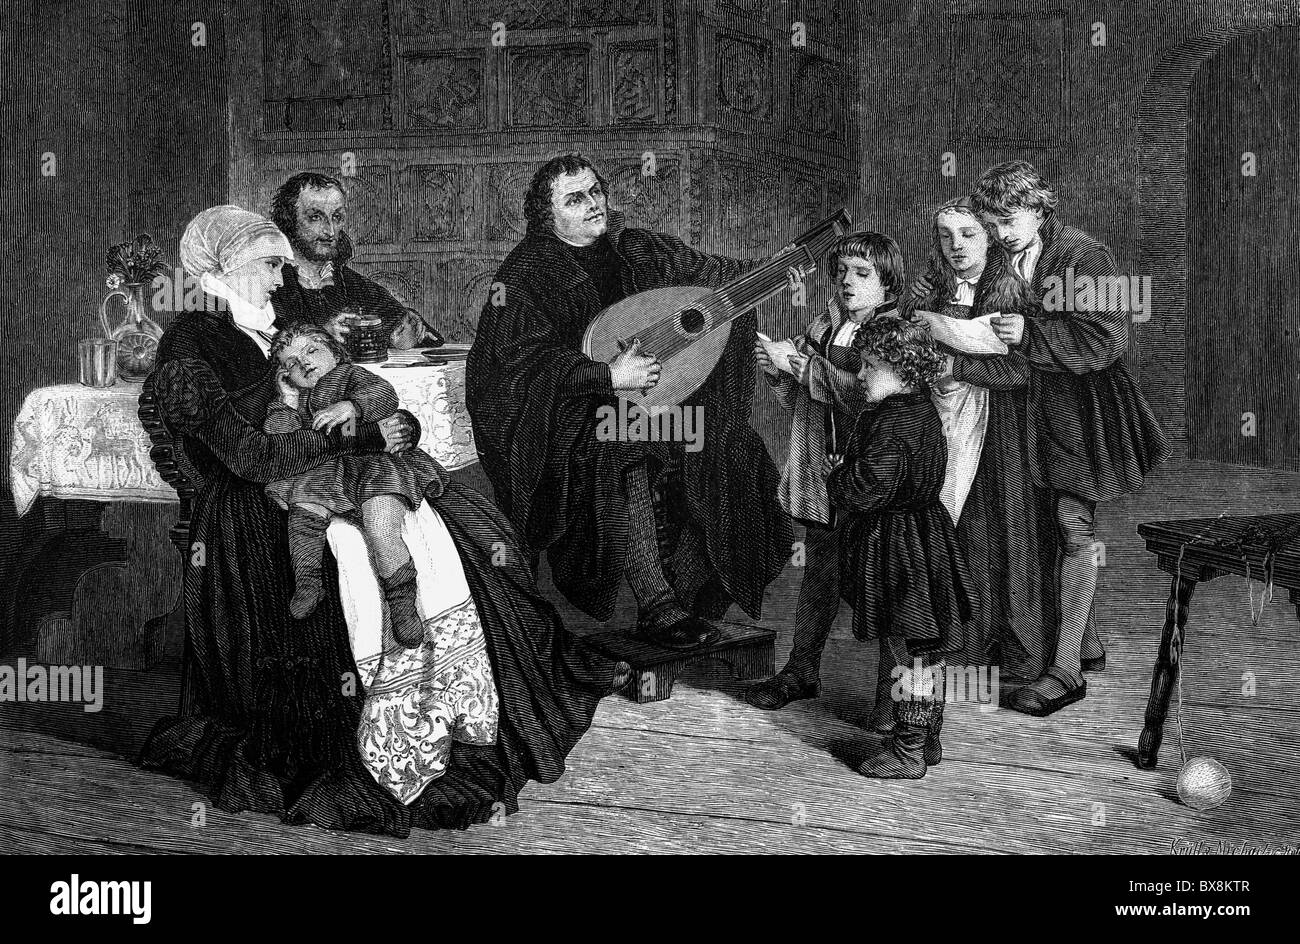 Luther, Martin, 10.11.1483 - 18.2.1546, German reformer, scene, making music with his family, wood engraving after - Stock Image